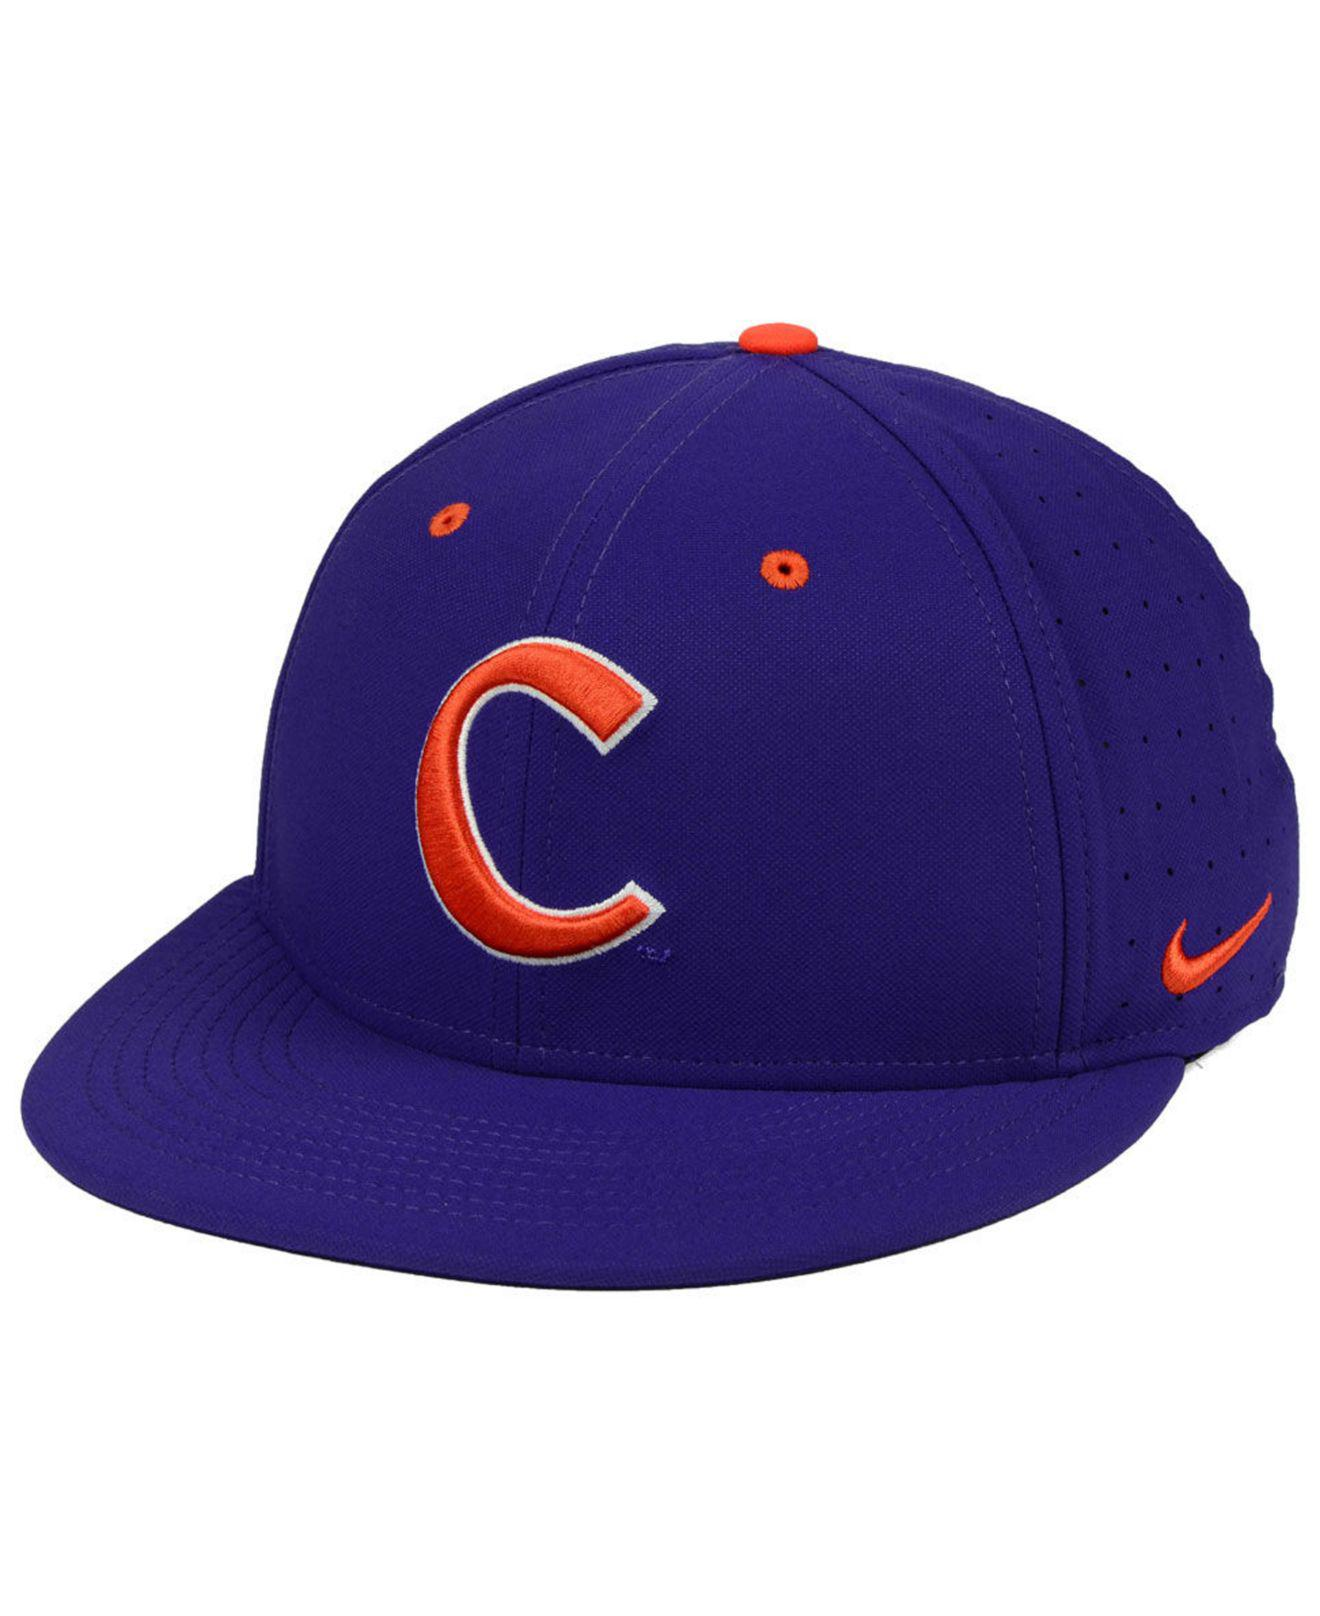 dfc9c01fdc5 Lyst - Nike Clemson Tigers Aerobill True Fitted Baseball Cap in ...